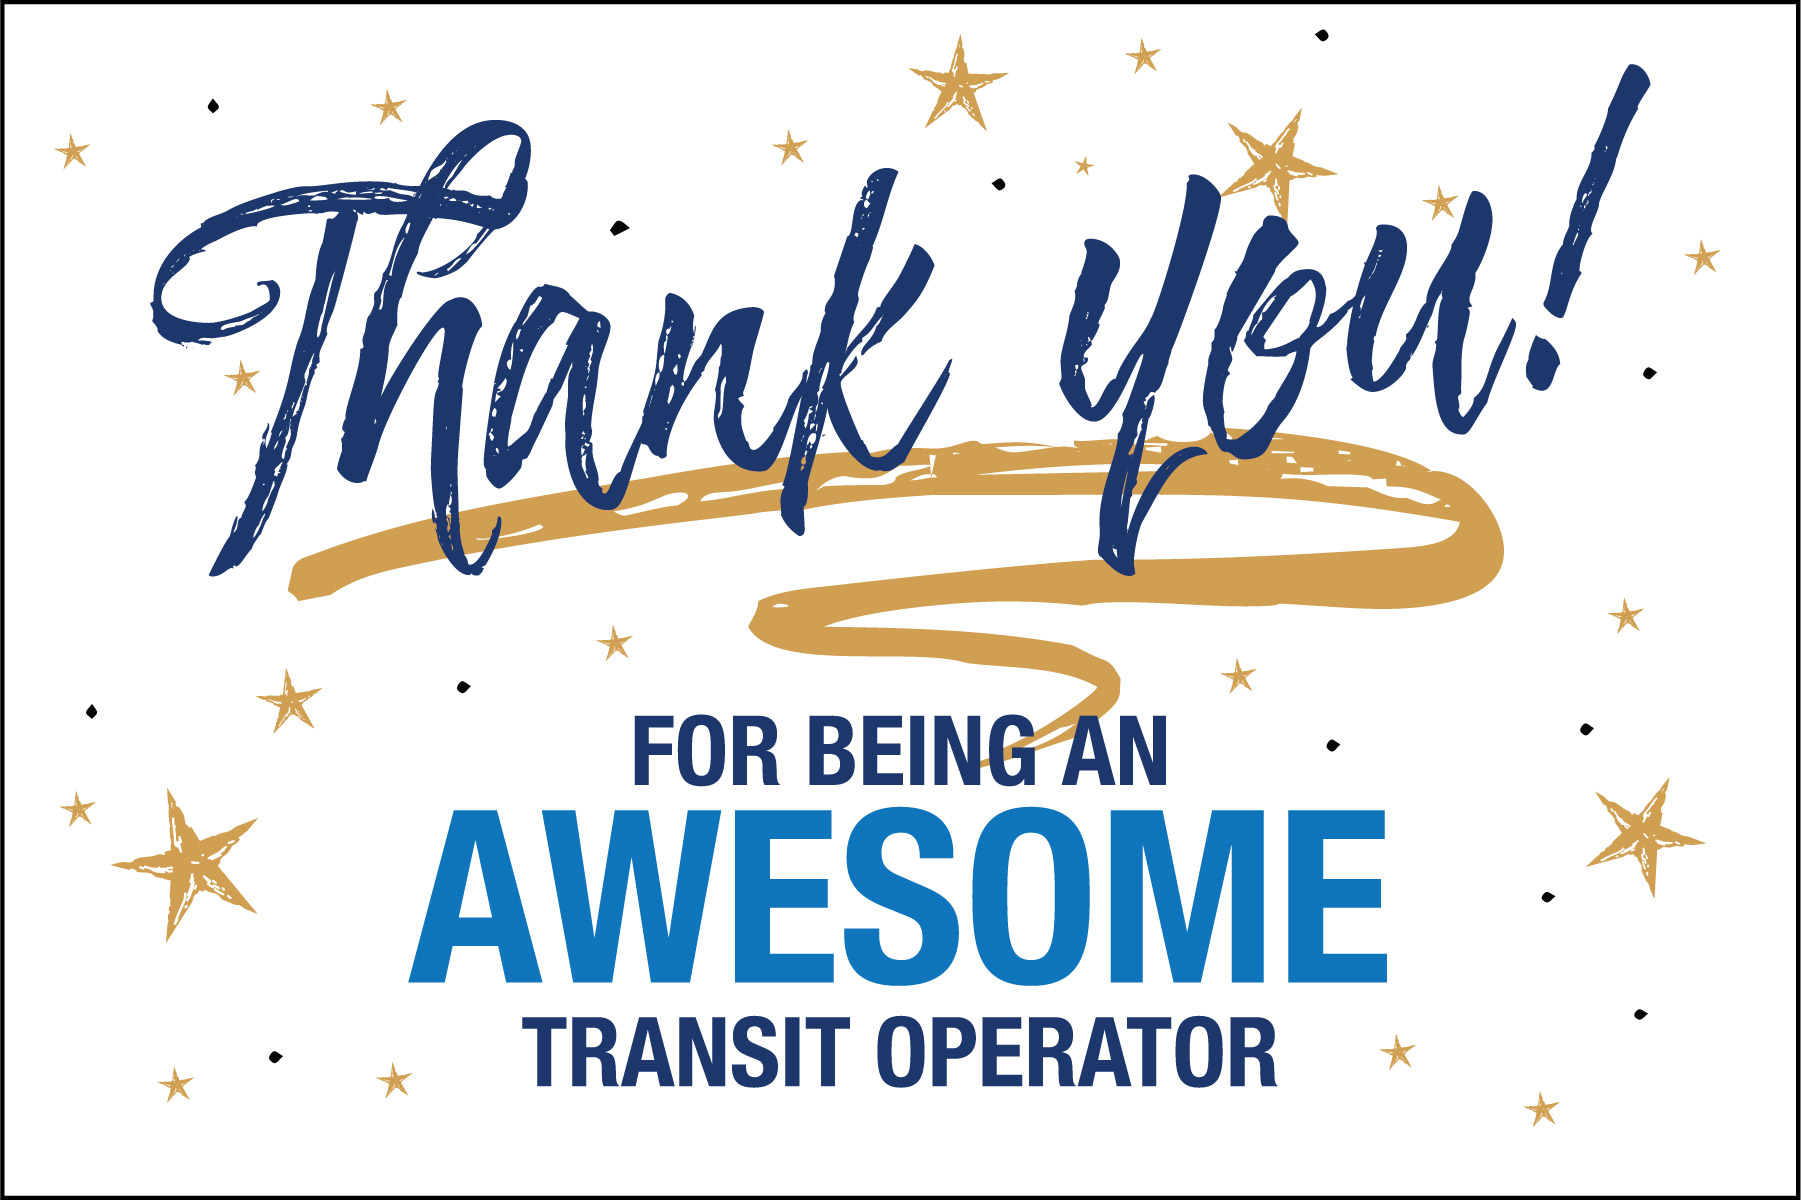 photograph regarding Bus Driver Thank You Card Printable referred to as Transit Driver Appreciation Working day